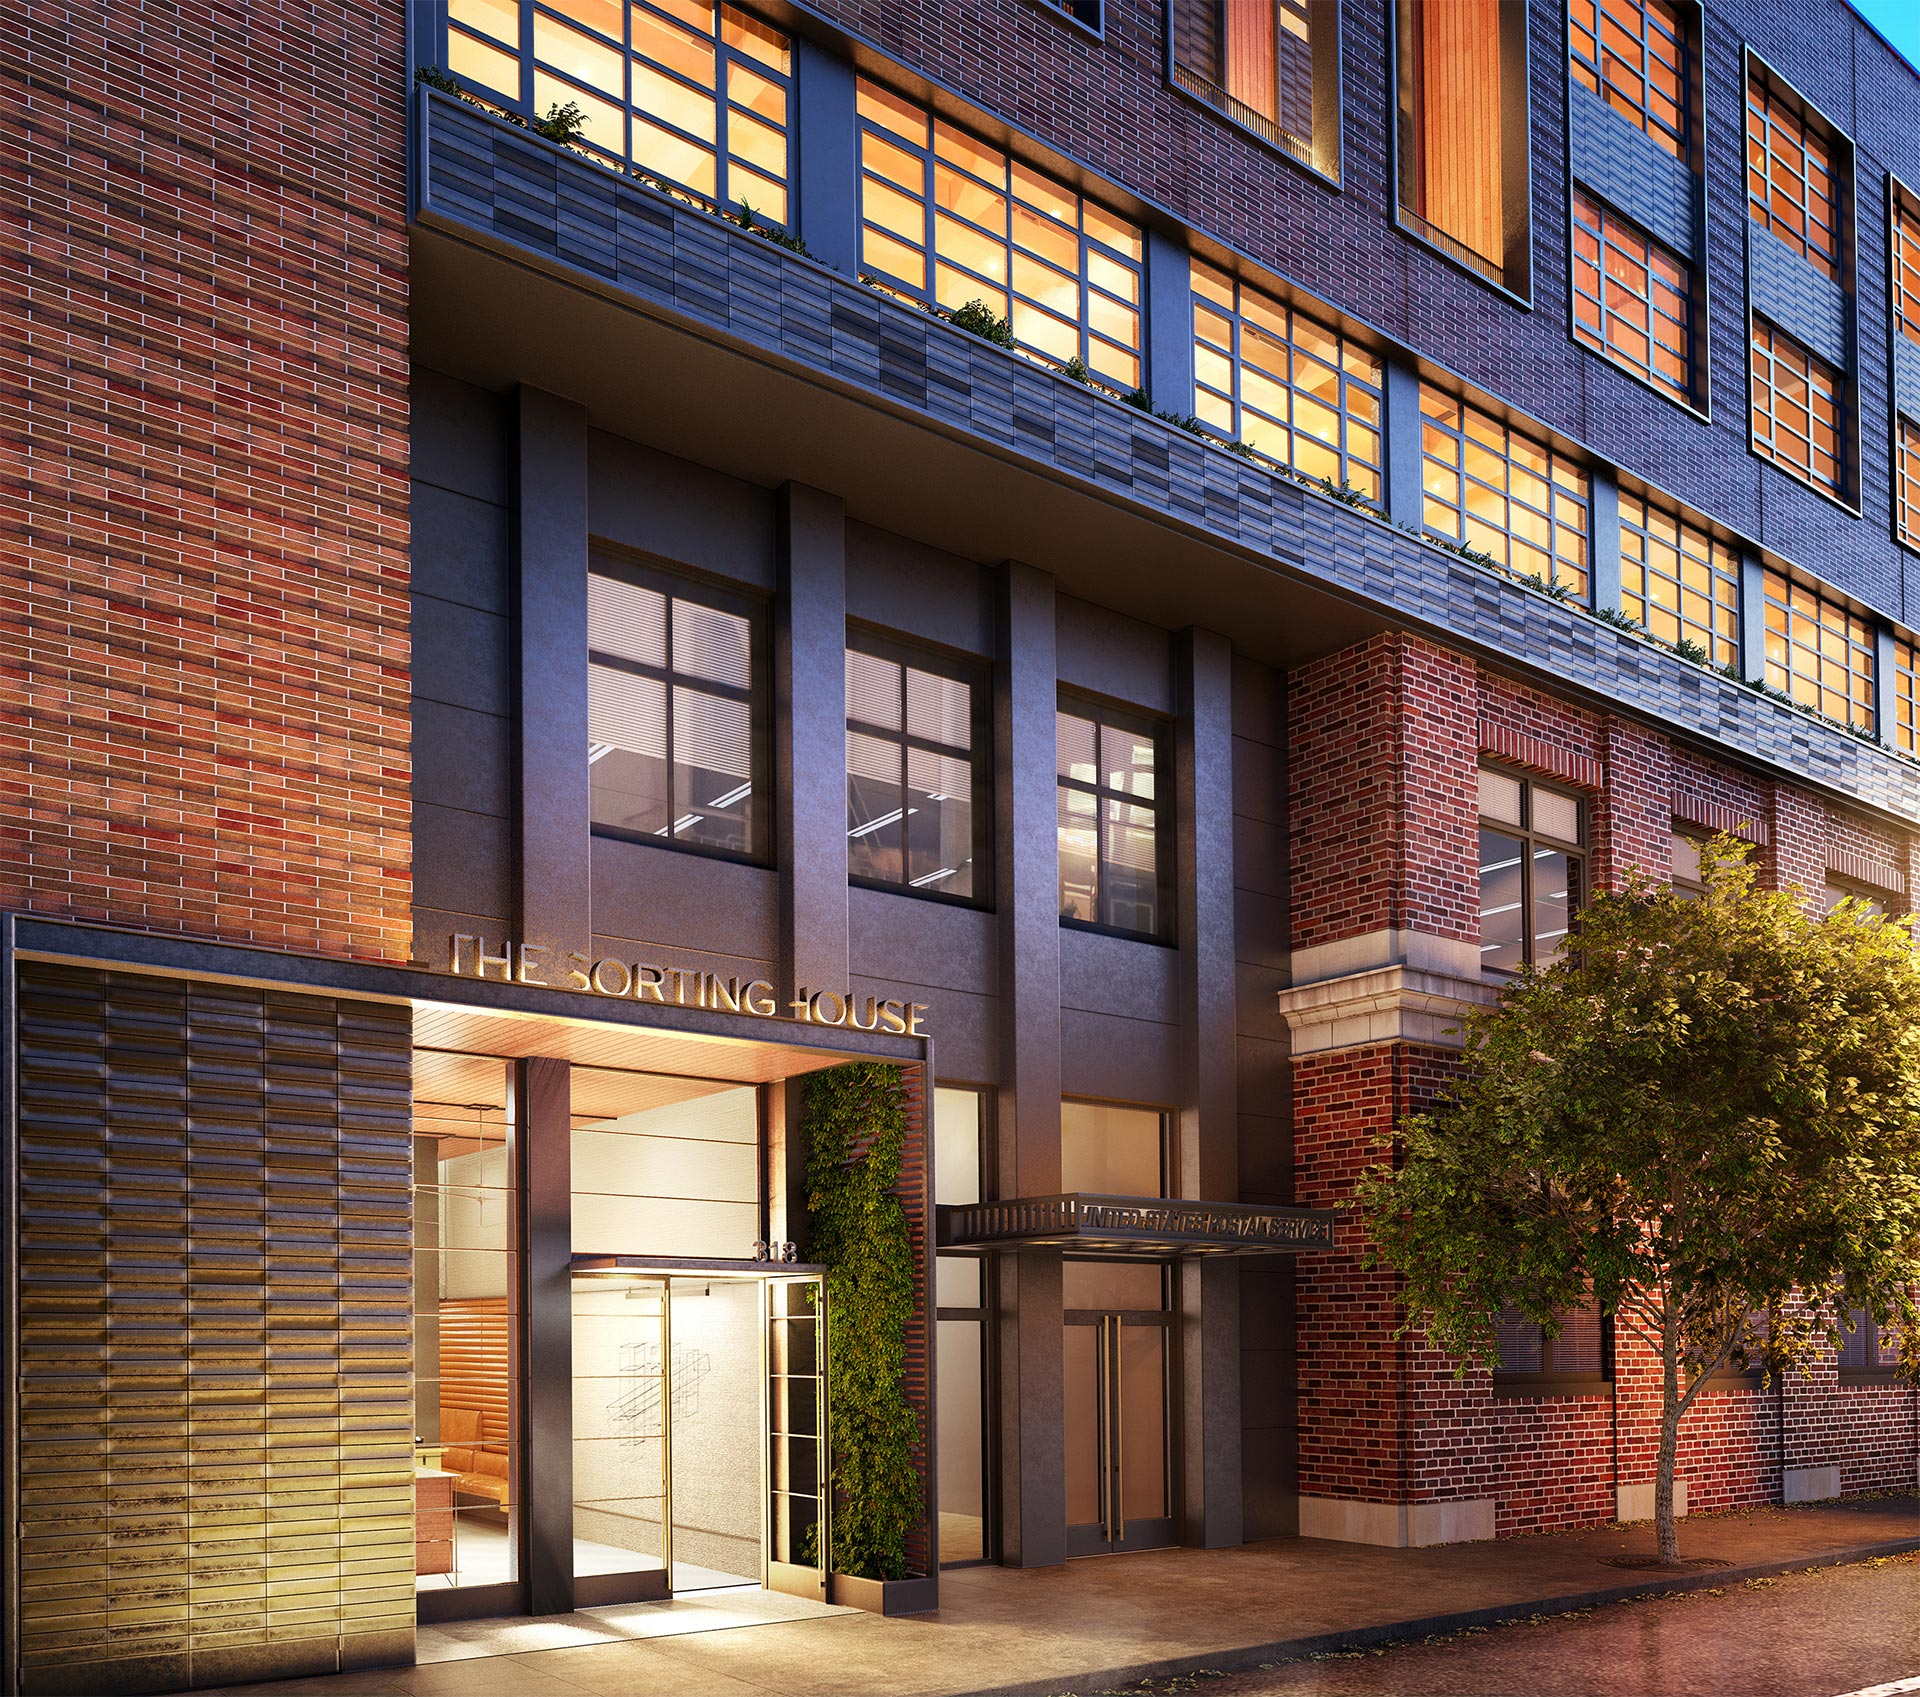 New residential entry at West 52nd Street. Rendering courtesy of Wordsearch.